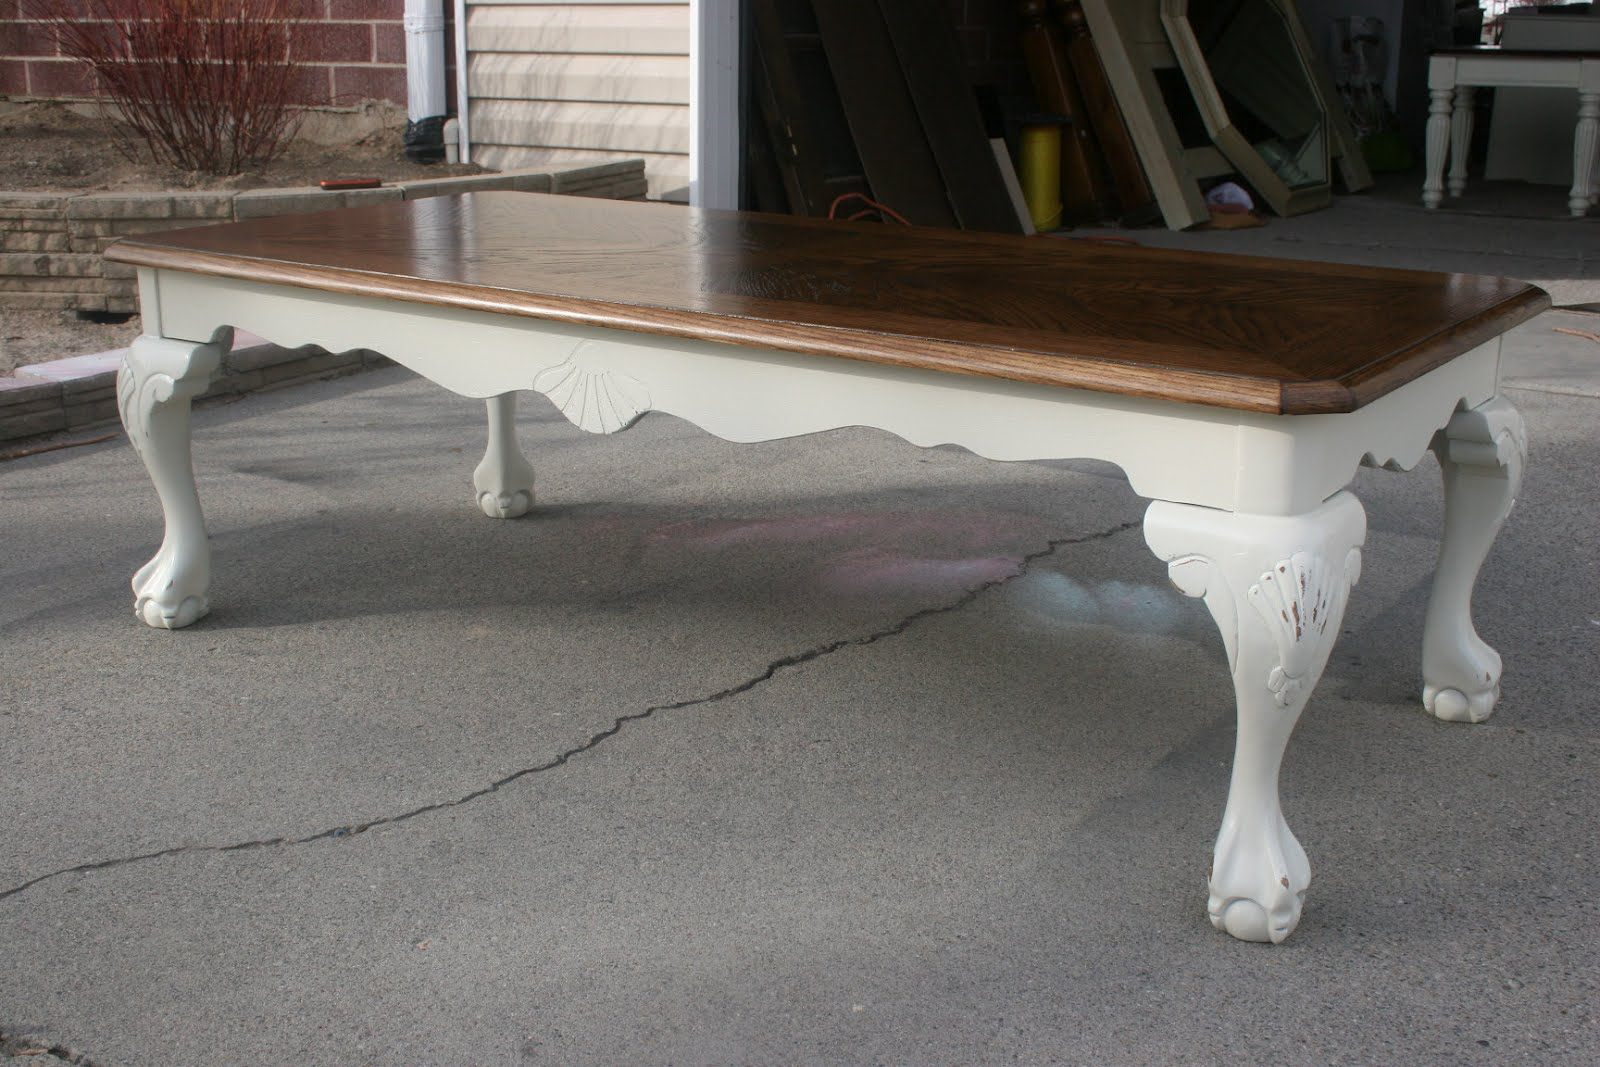 ... Clawfoot Coffee Table NOW 60.00. SOLD 2 Matching Solid Wood Two Toned  Distressed Side Tables NOW 110.00